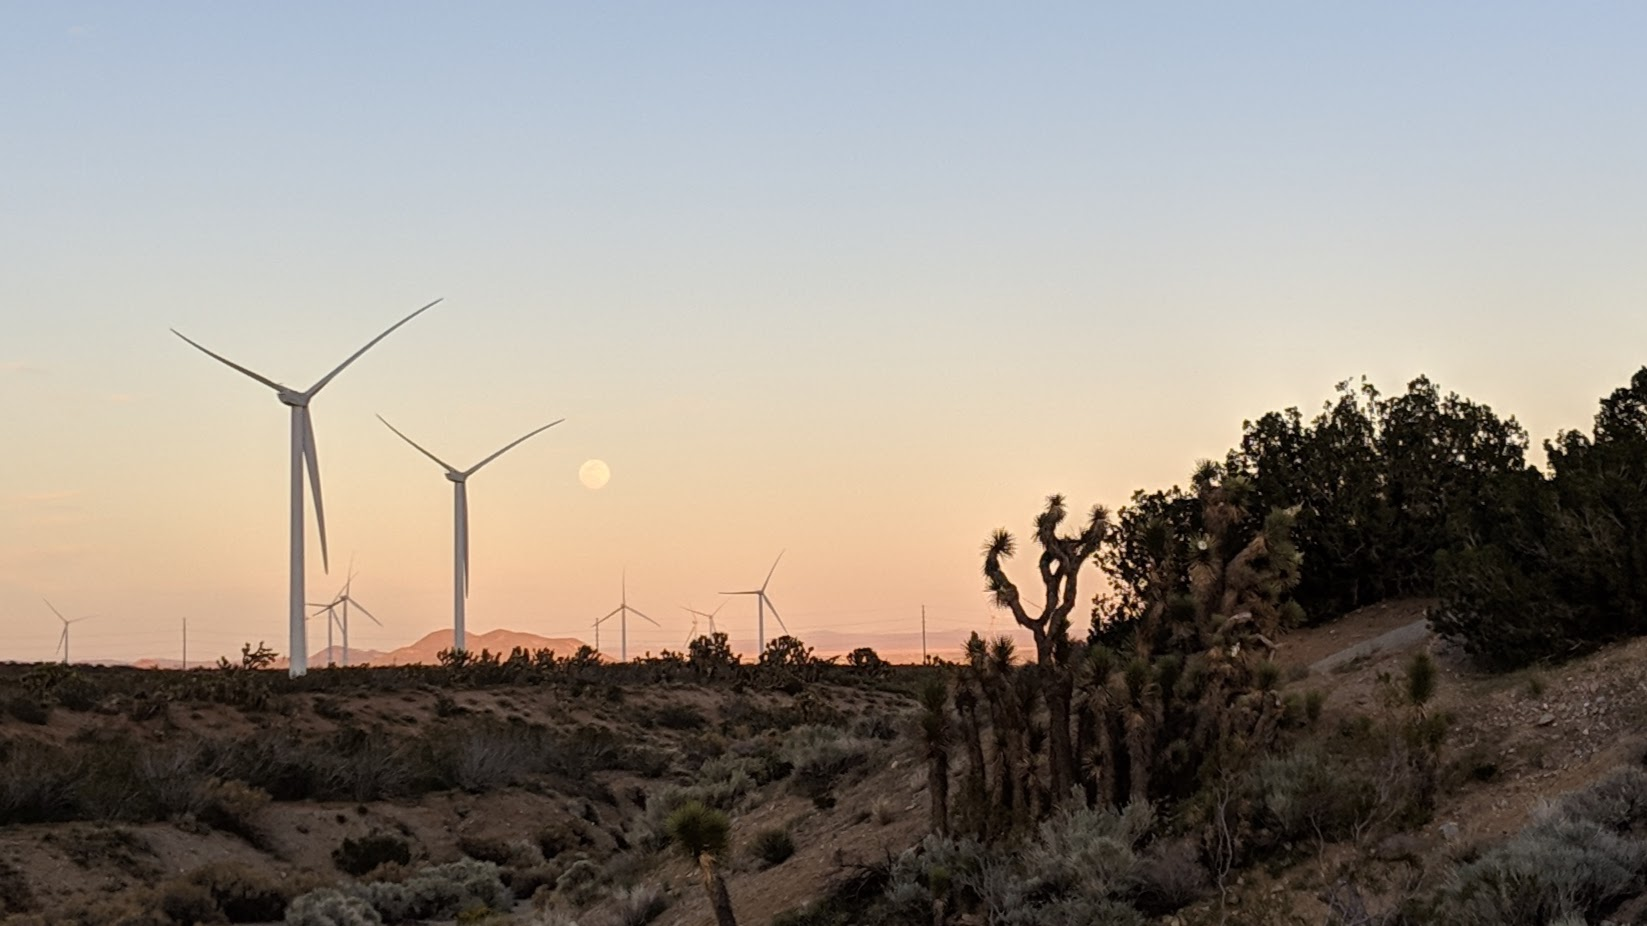 La lune, les éoliennes et les arbres Joshua • The moon, the wind mills and the Joshua trees